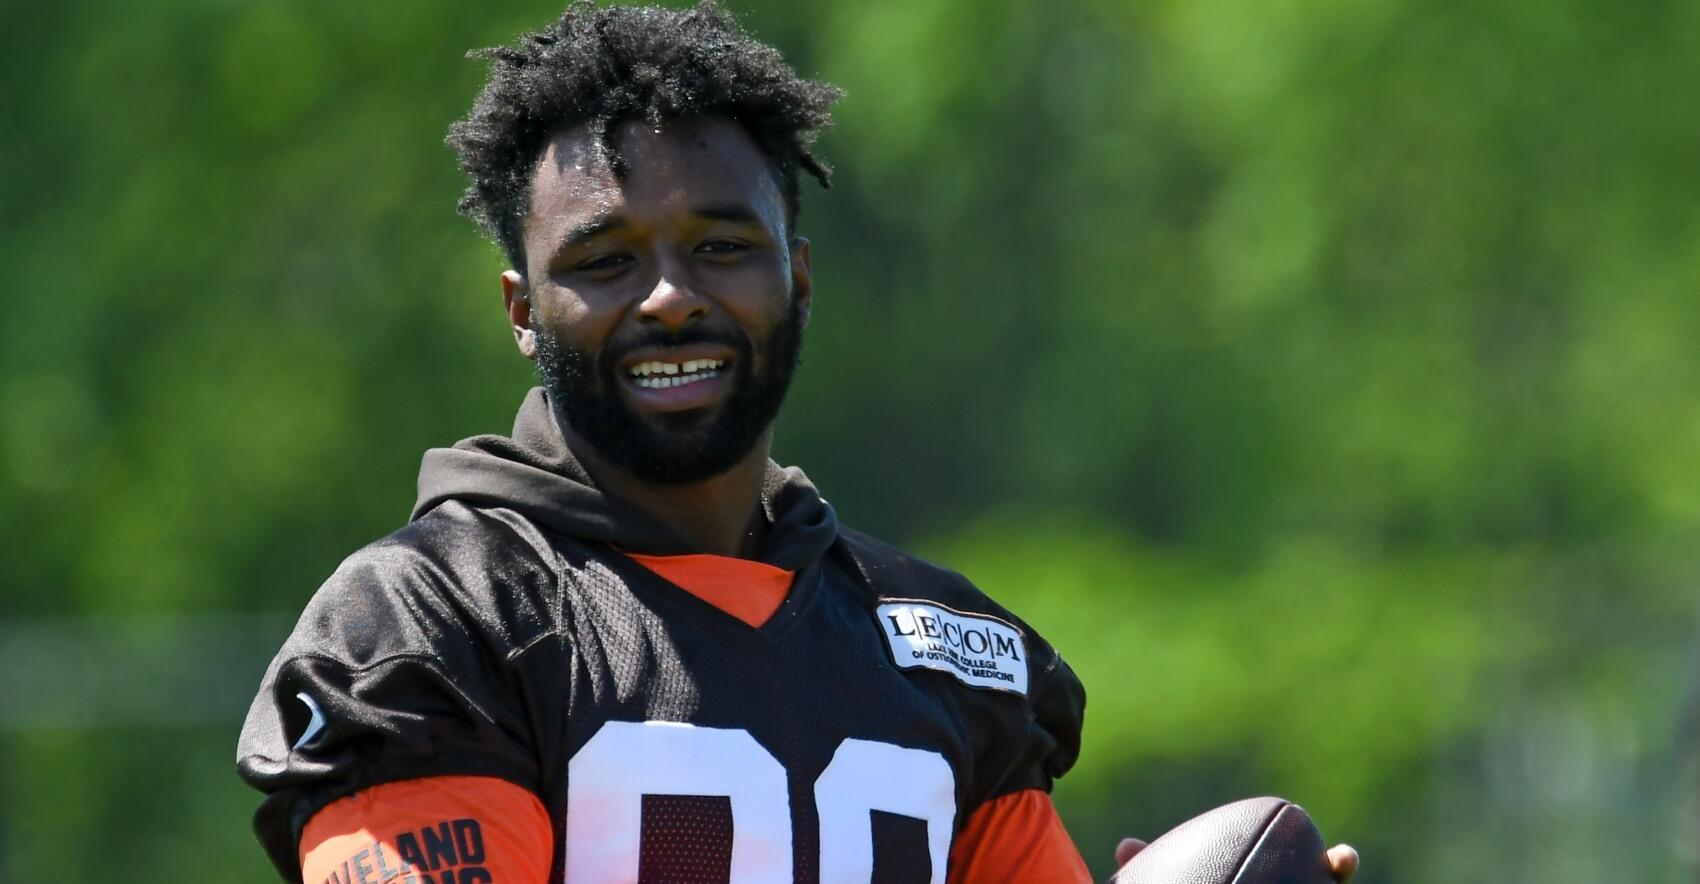 Jarvis Landry: The Path to WR1 Fantasy Season